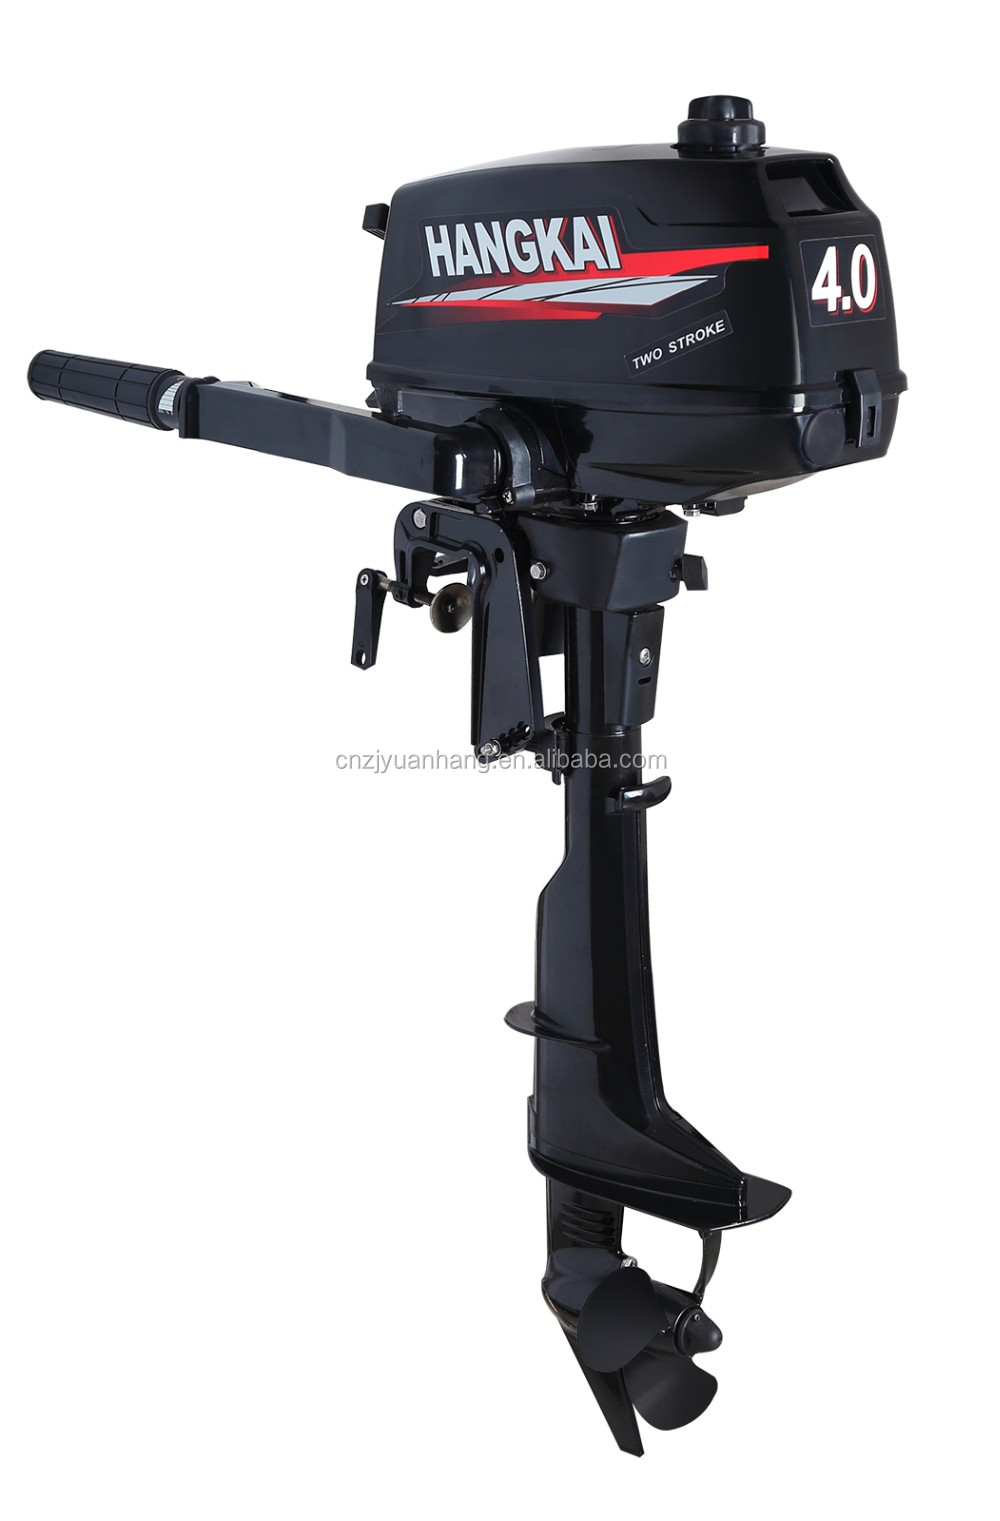 Wholesale price 4hp outboard motor with tiller control for Wholesale motor oil prices